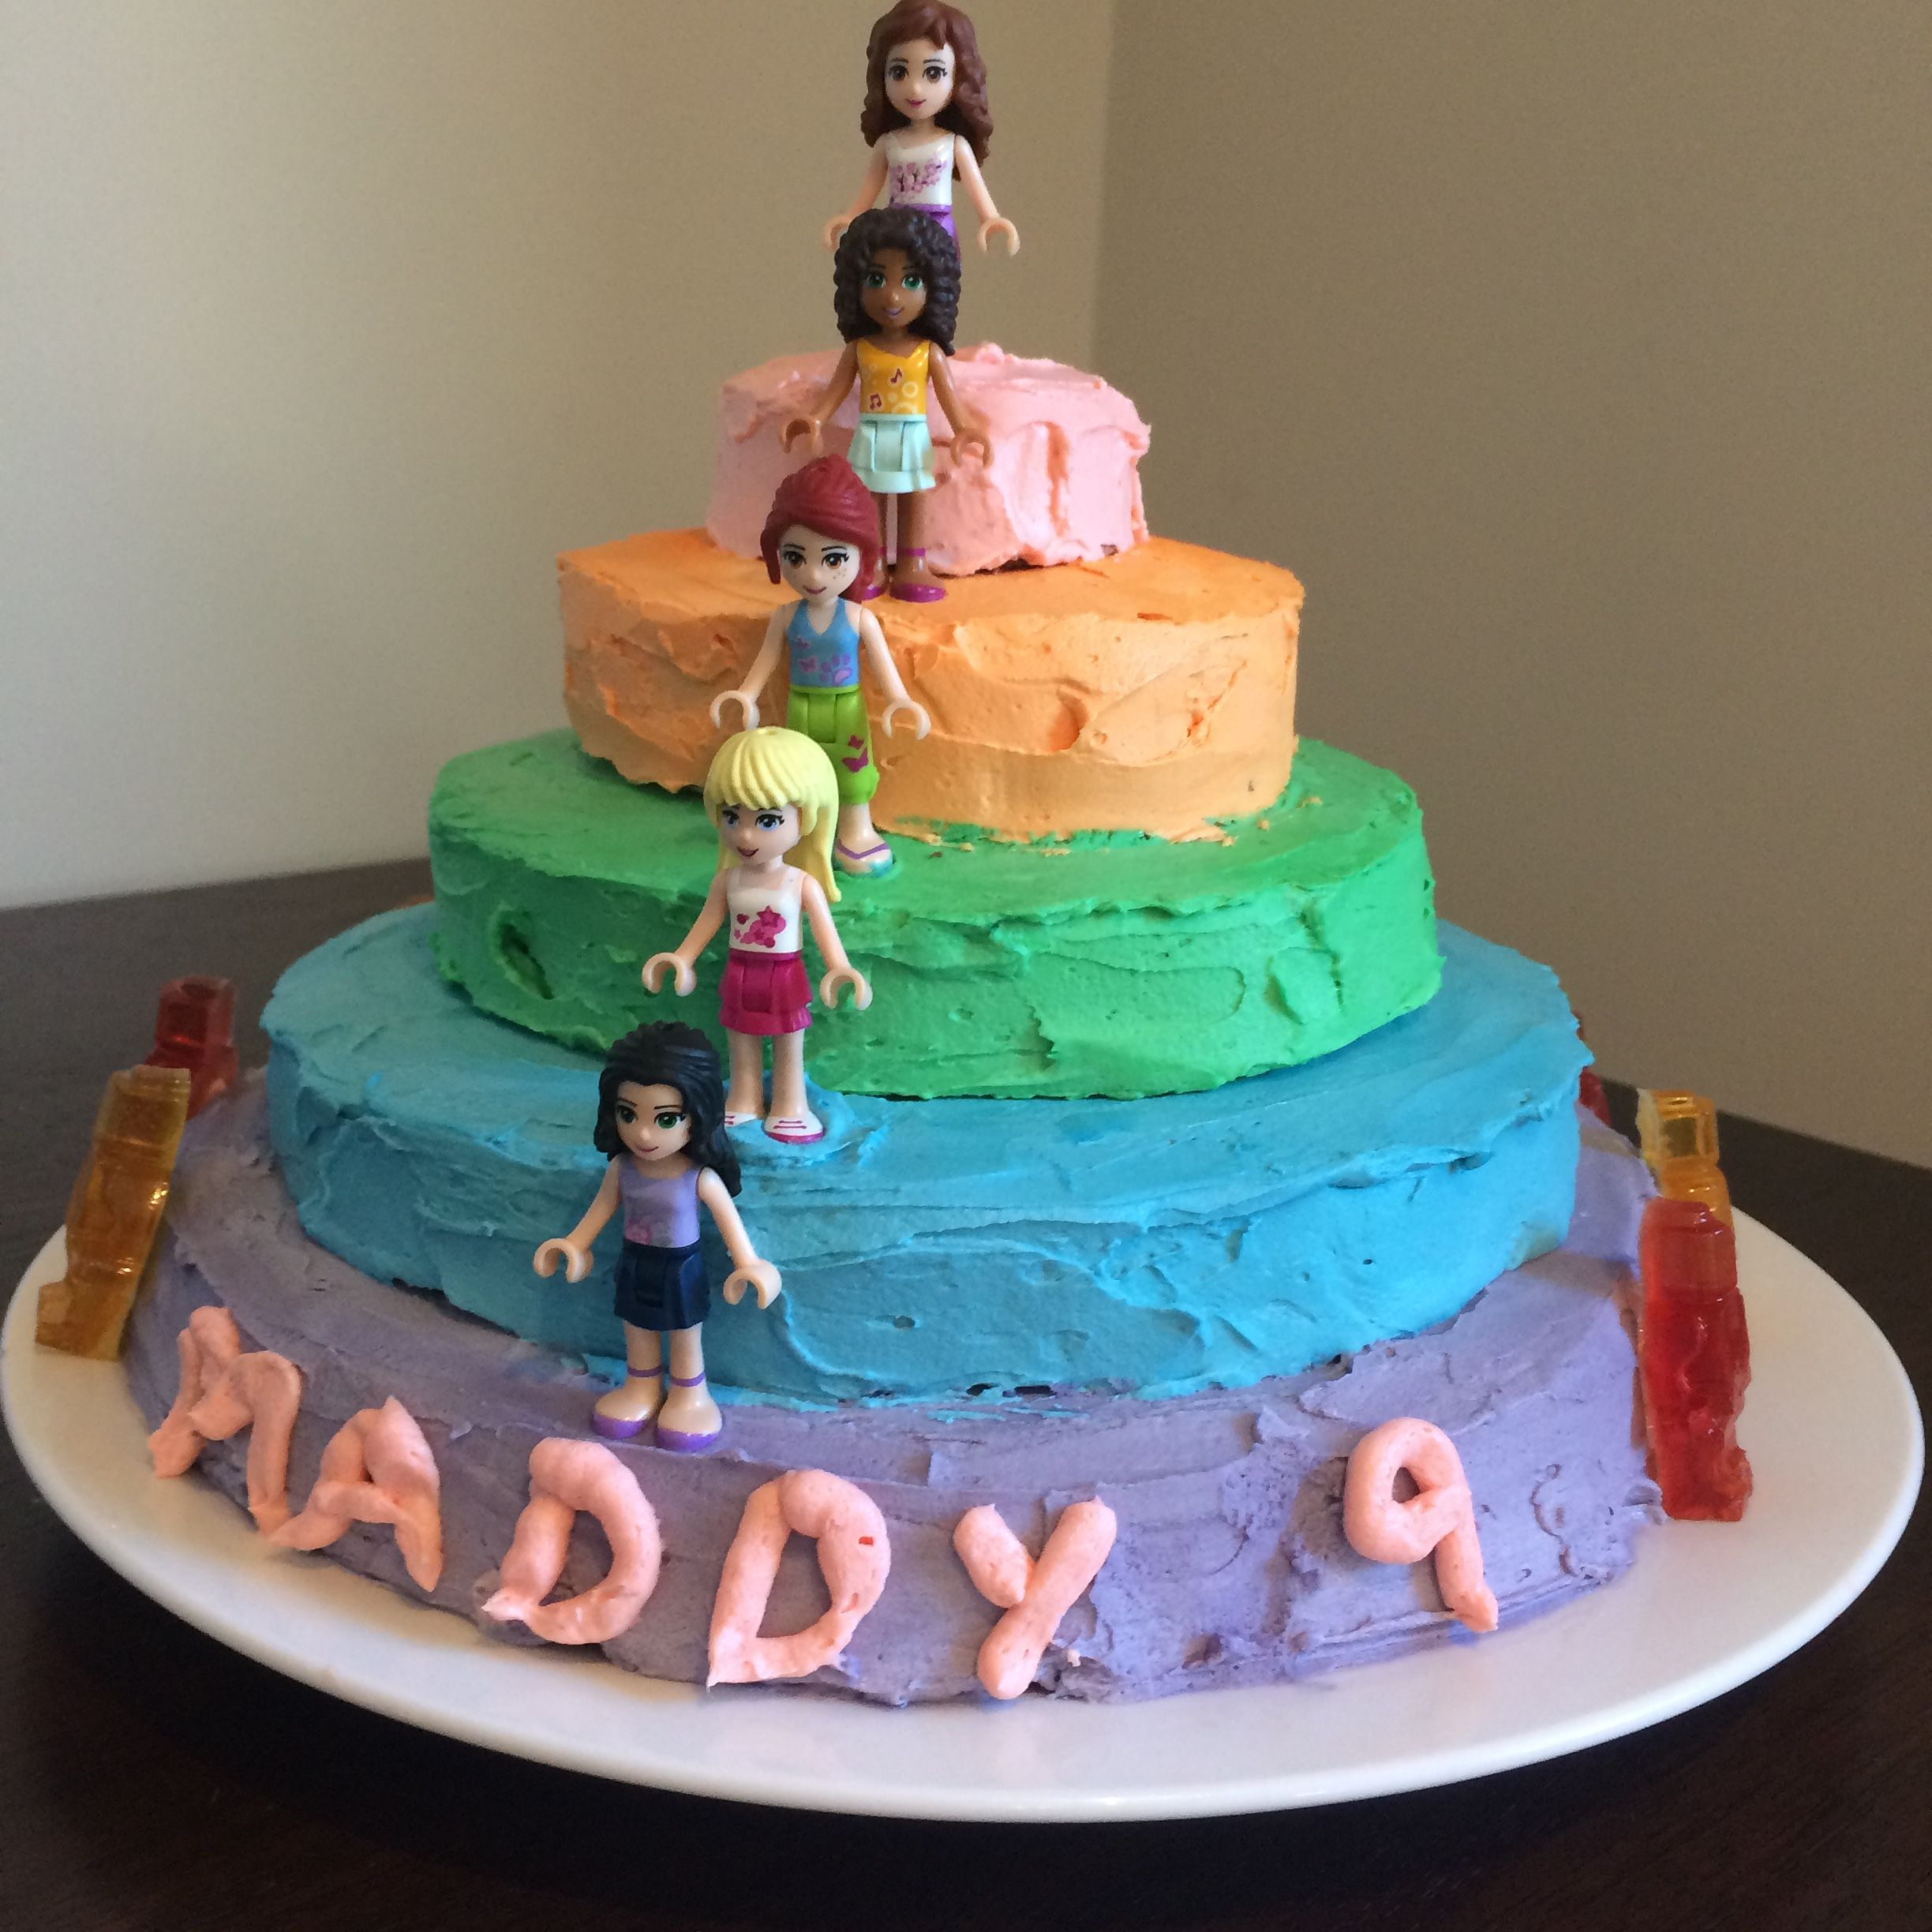 Amazing Lego Friends Layer Cake For 9 Year Old Girl With Images My Personalised Birthday Cards Beptaeletsinfo